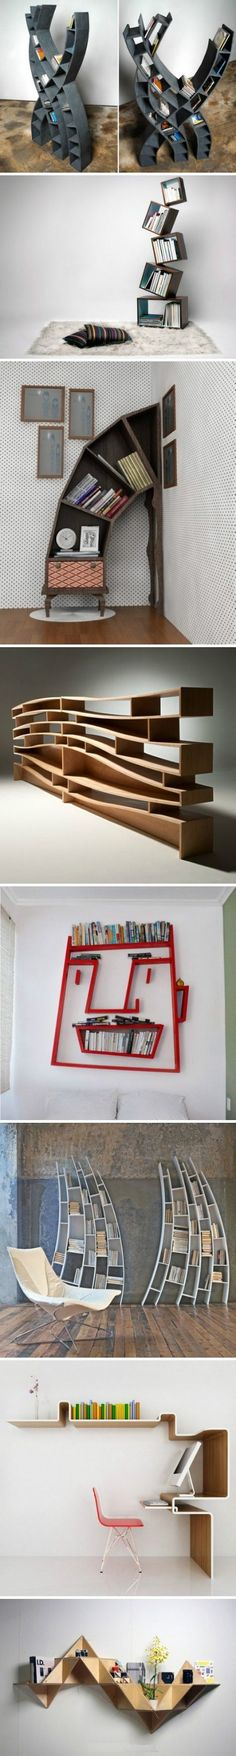 Creative and useful design of bookshelf.